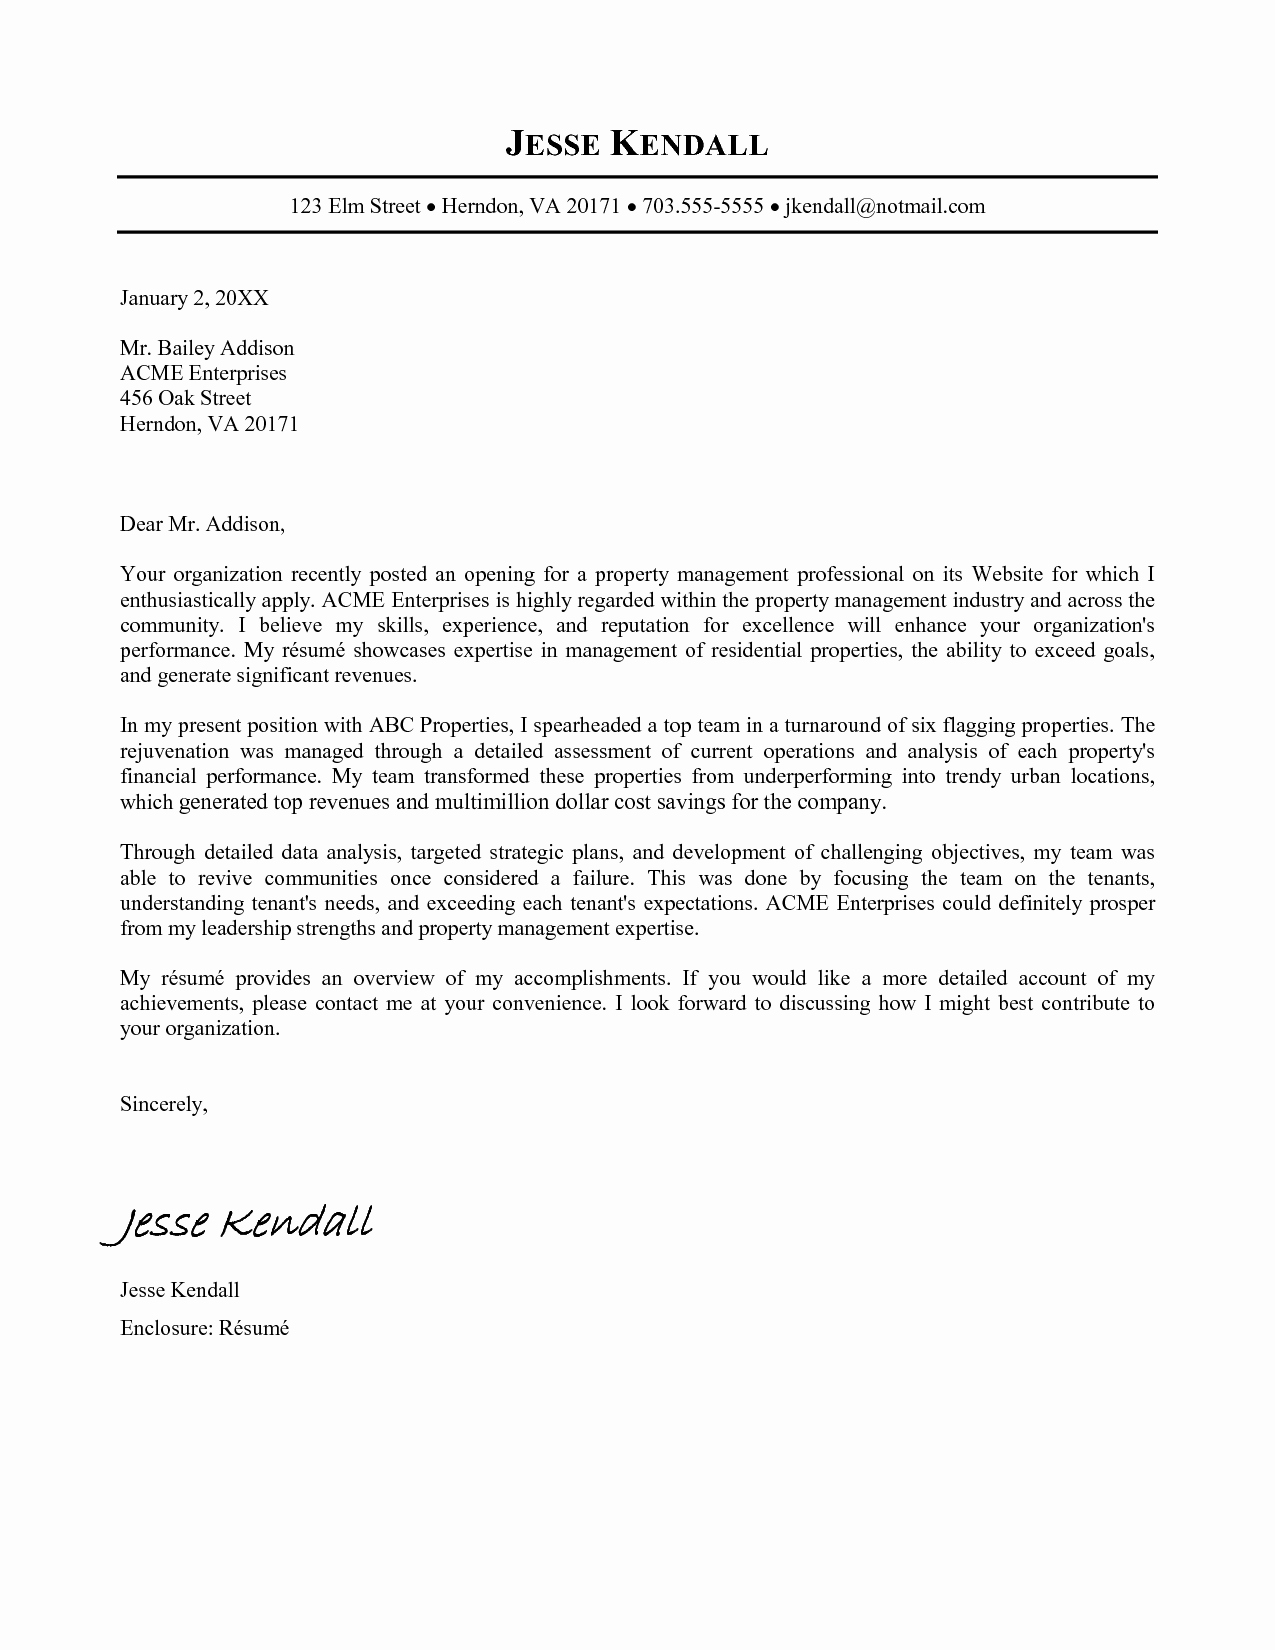 Resume and Cover Letter Template Unique Sample Cover Letter